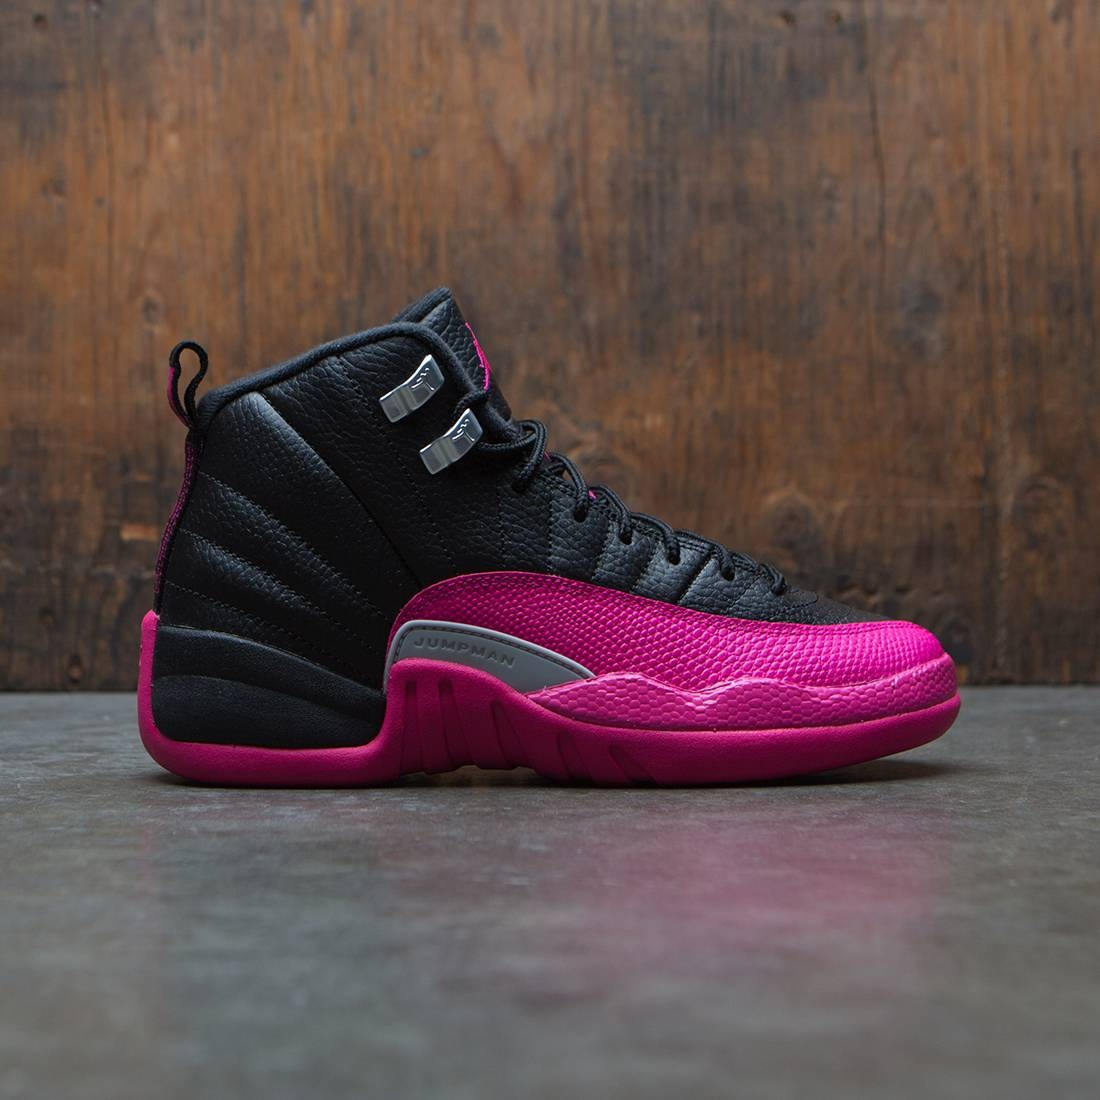 new product 26b83 9d95e Air Jordan 12 Retro (GS) Big Kids Girls' (black / deadly pink-metallic  silver)